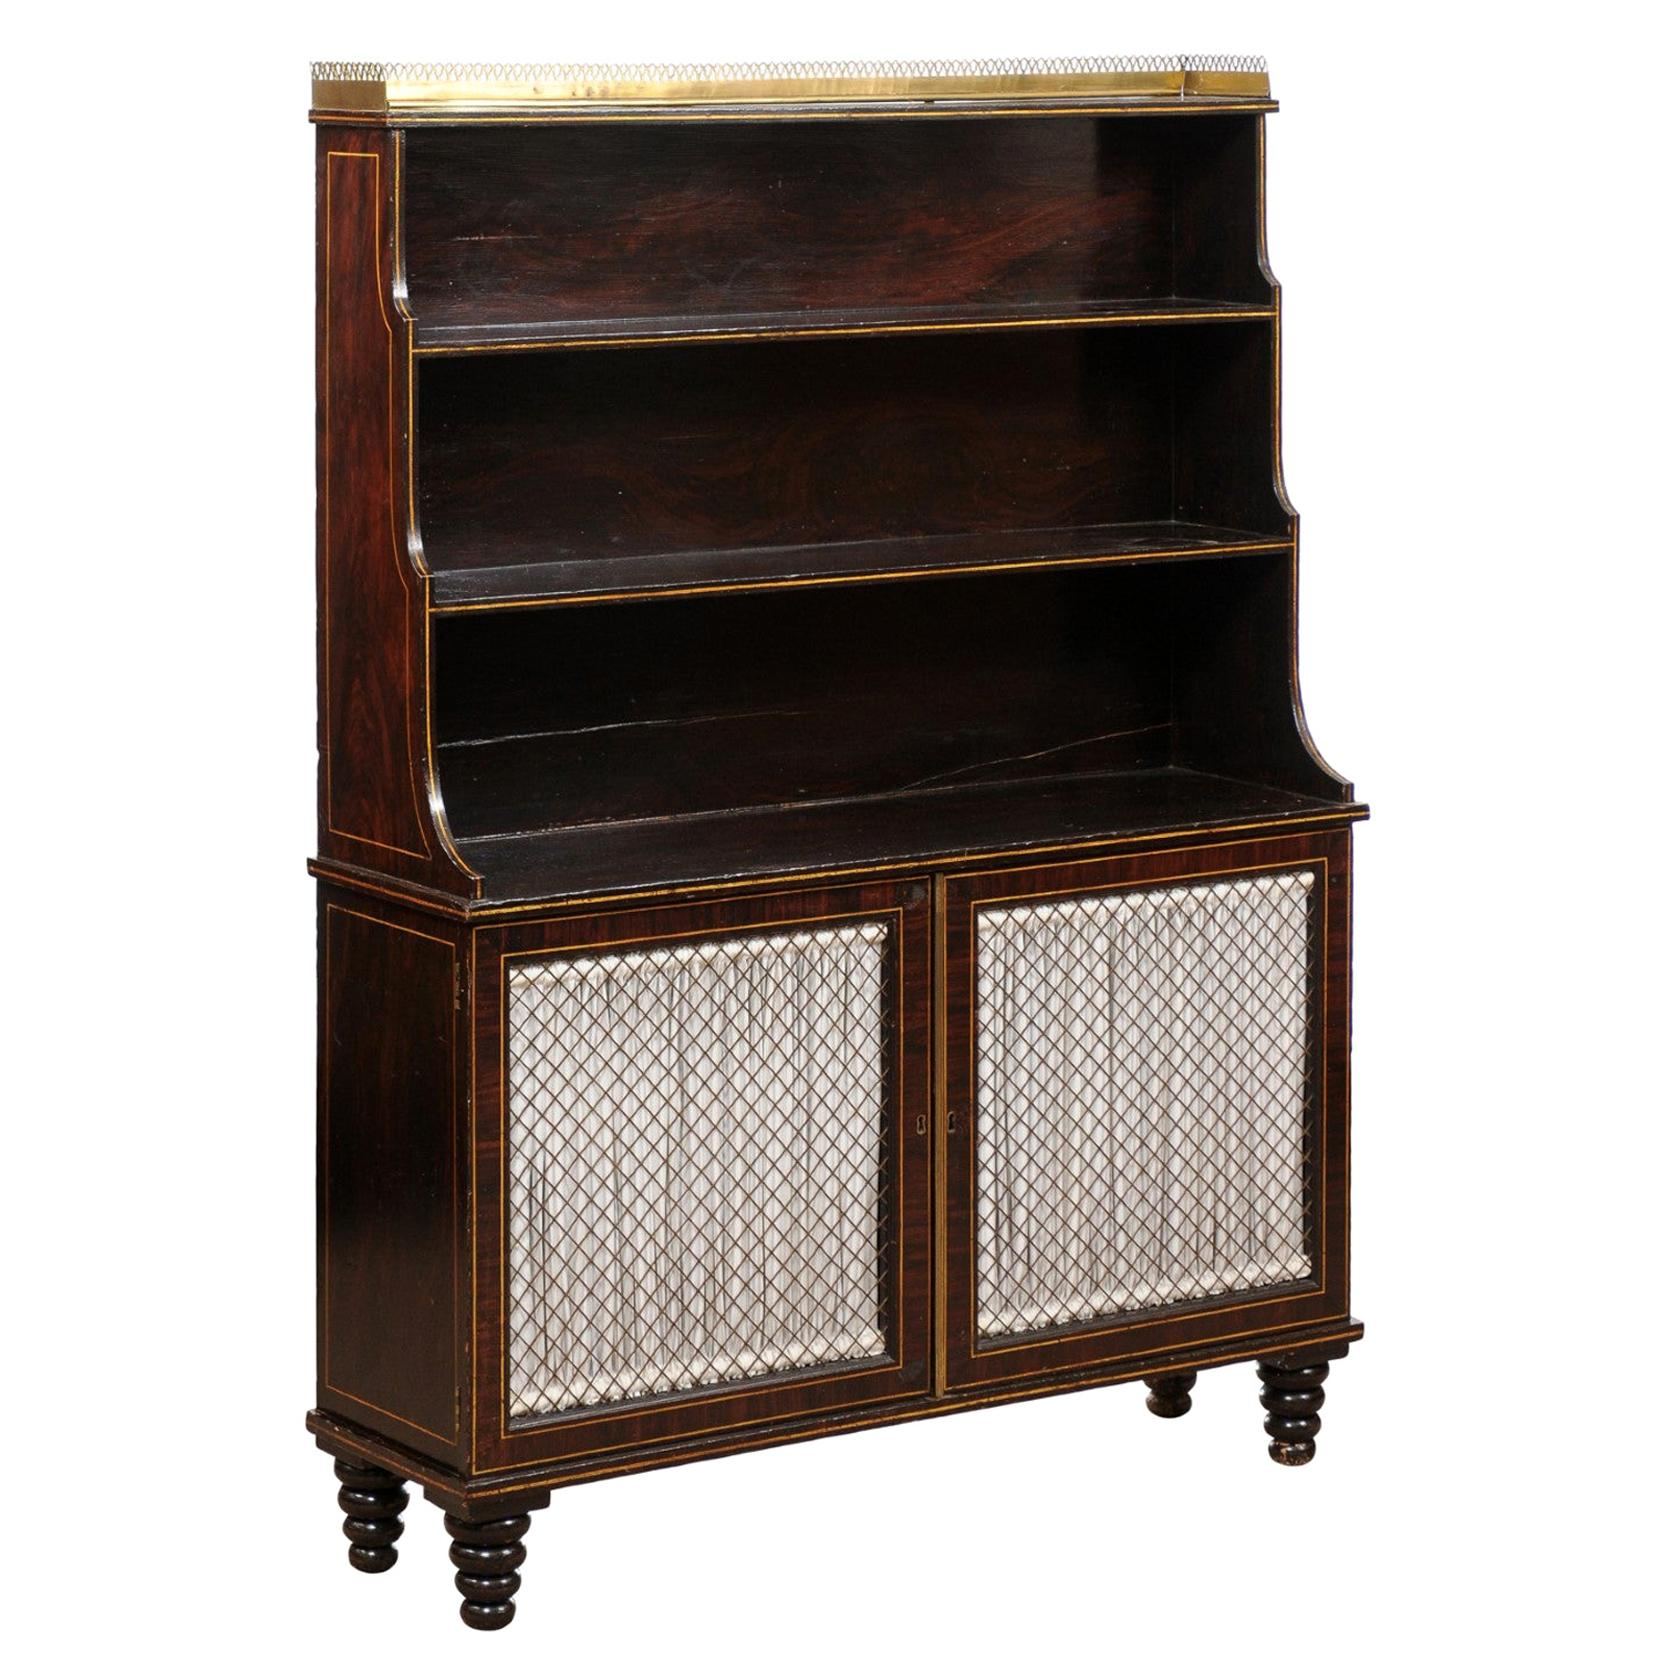 Early 19th Century English Regency Faux Grain Painted Chiffoniere / Bookcase